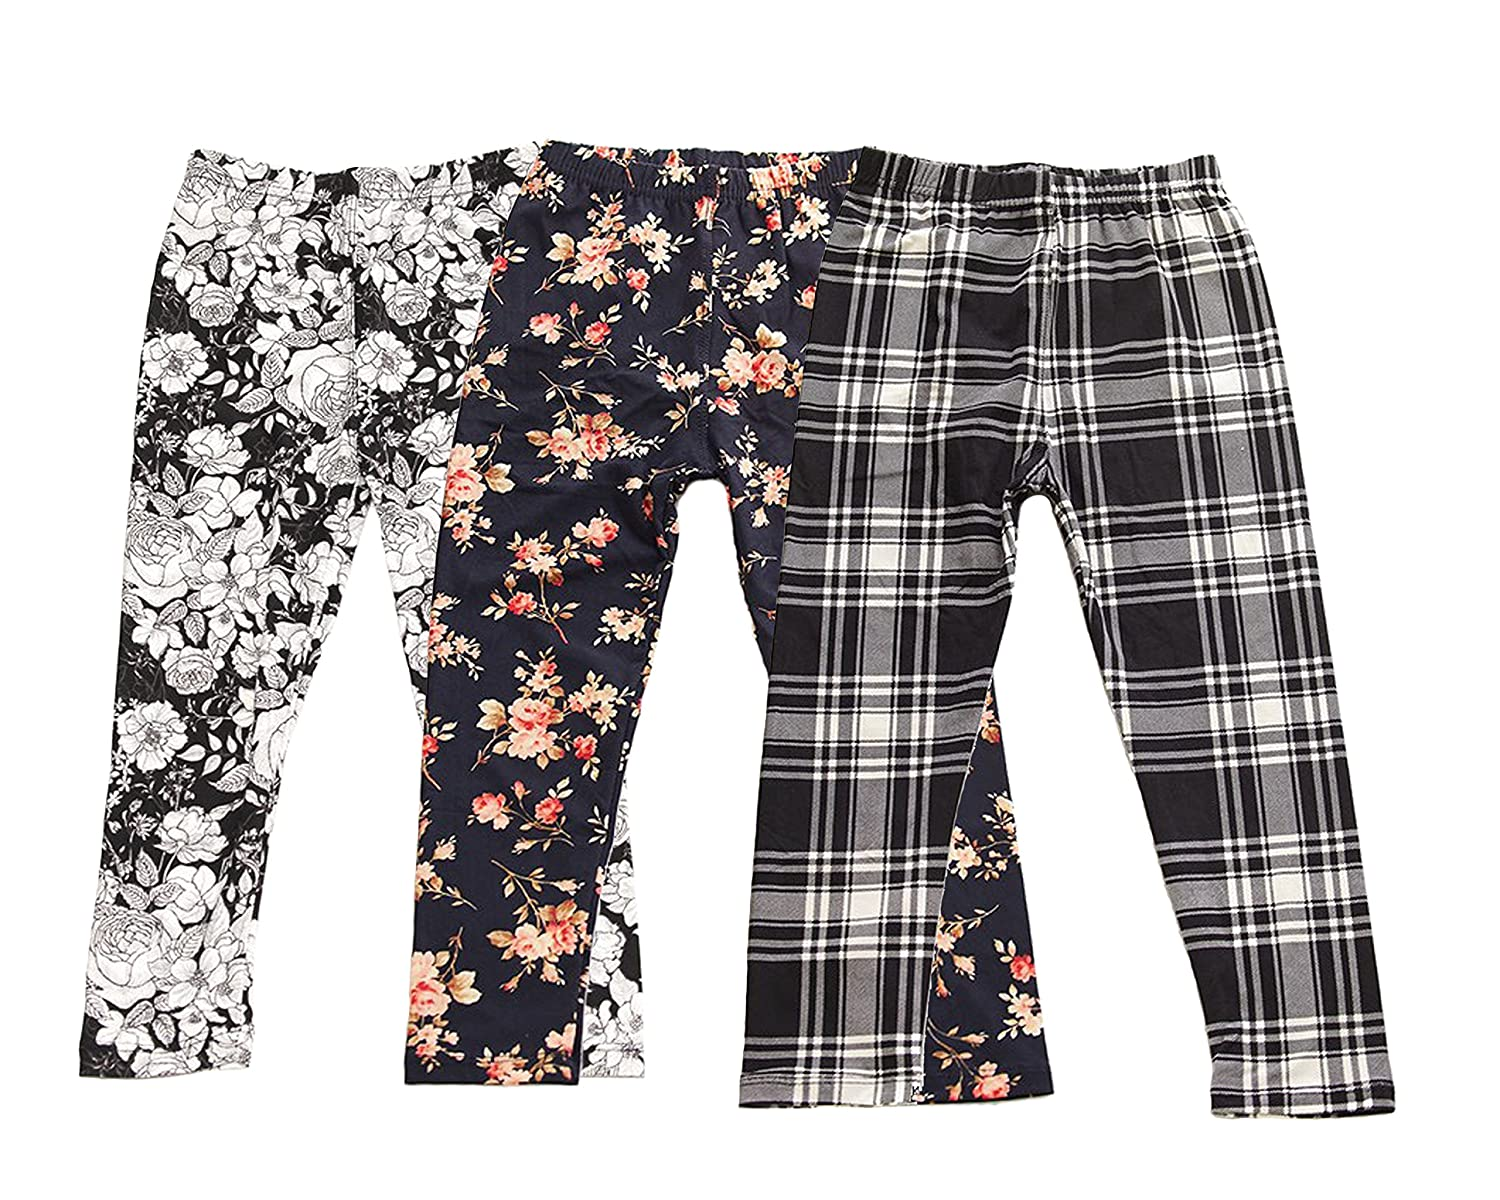 Simply Savvy Co USA Designers 3pk Girls Kids Floral Tights Leggings 4-8yrs Color Options